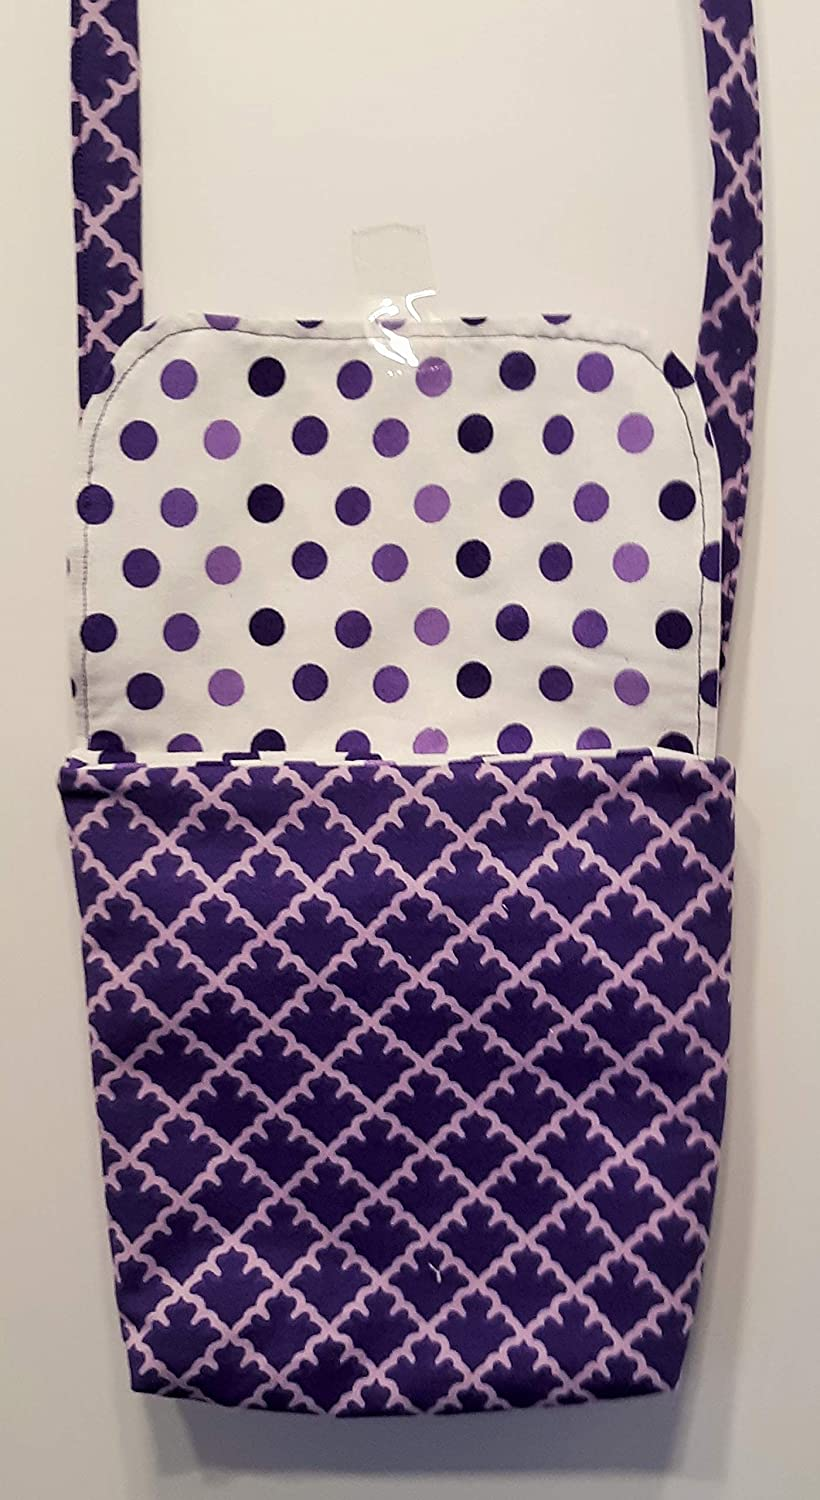 7 x 7 Two Pockets inside. Childrens Cross Body Purse